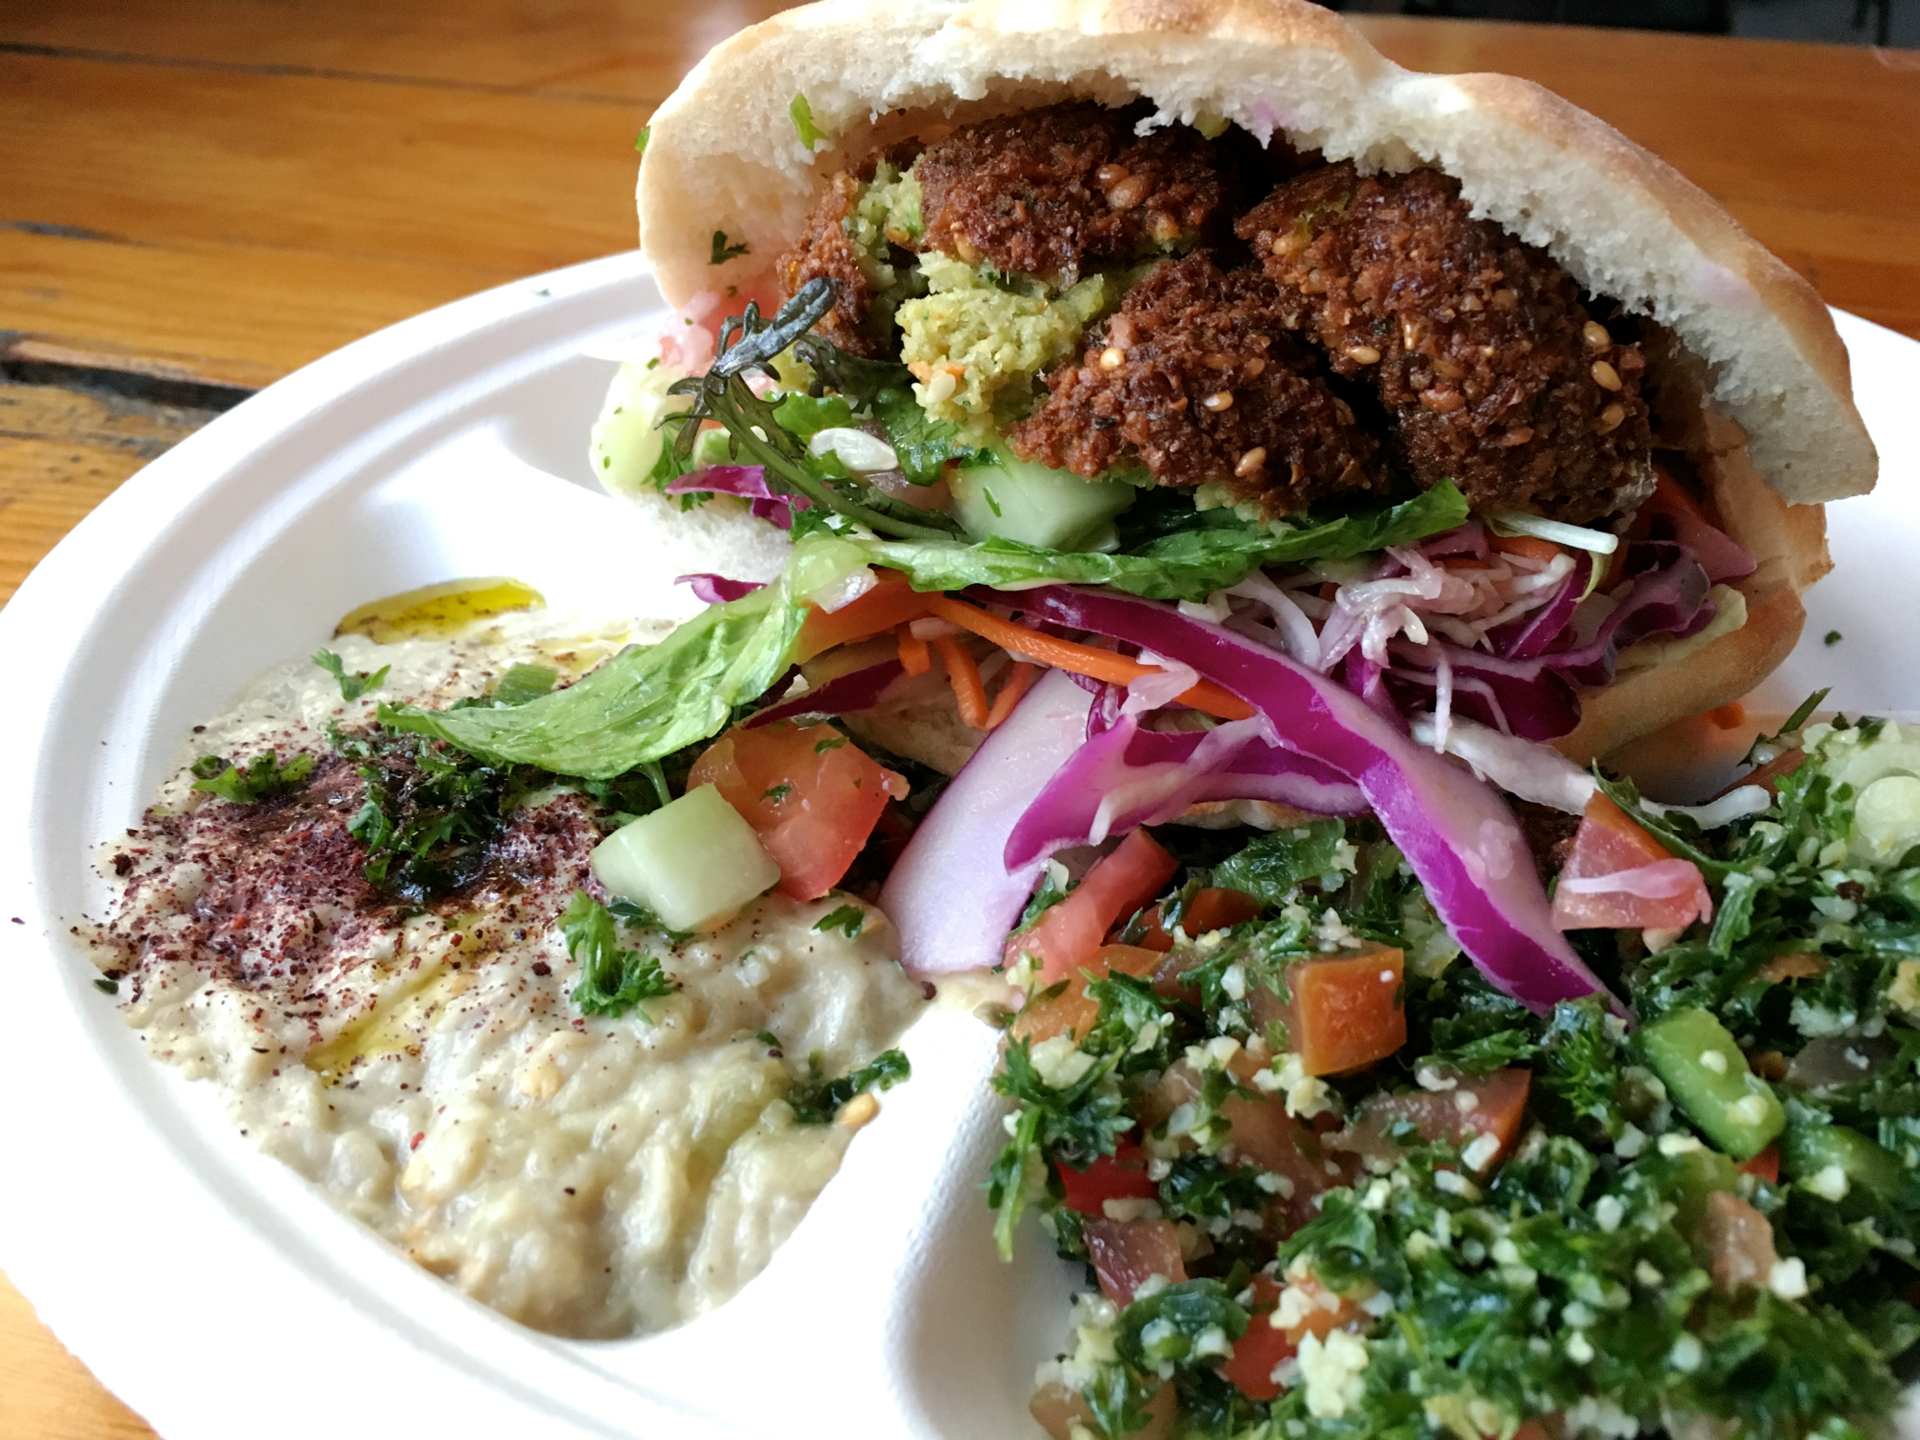 A falafel pita with baba ganoush and tabbouleh at Dish n Dash in Sunnyvale.